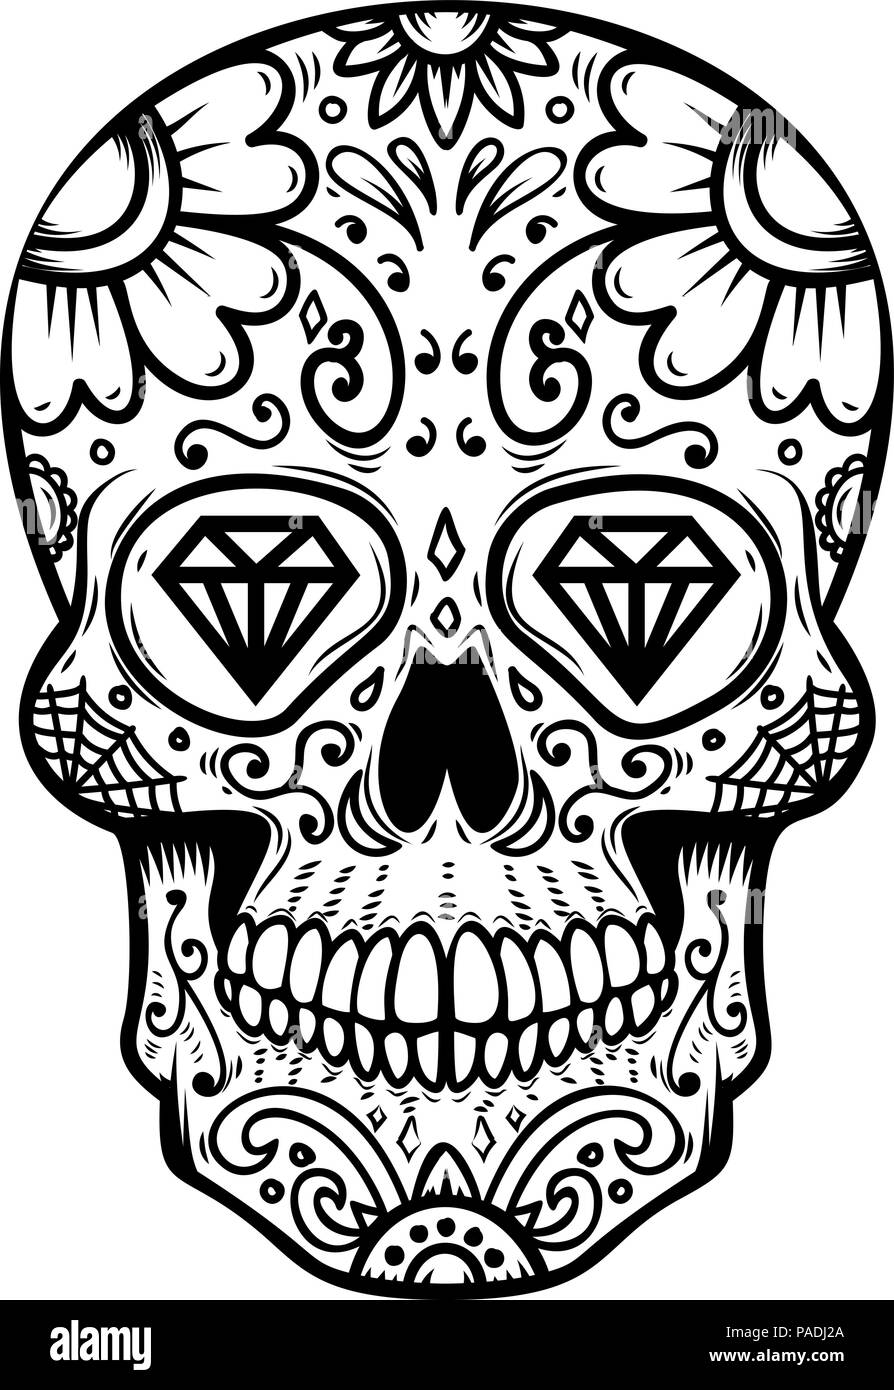 Sugar Skull Isolated On White Background Day Of The Dead Dia De Los Muertos Design Element For Poster Card Banner Print Vector Illustration Stock Vector Image Art Alamy